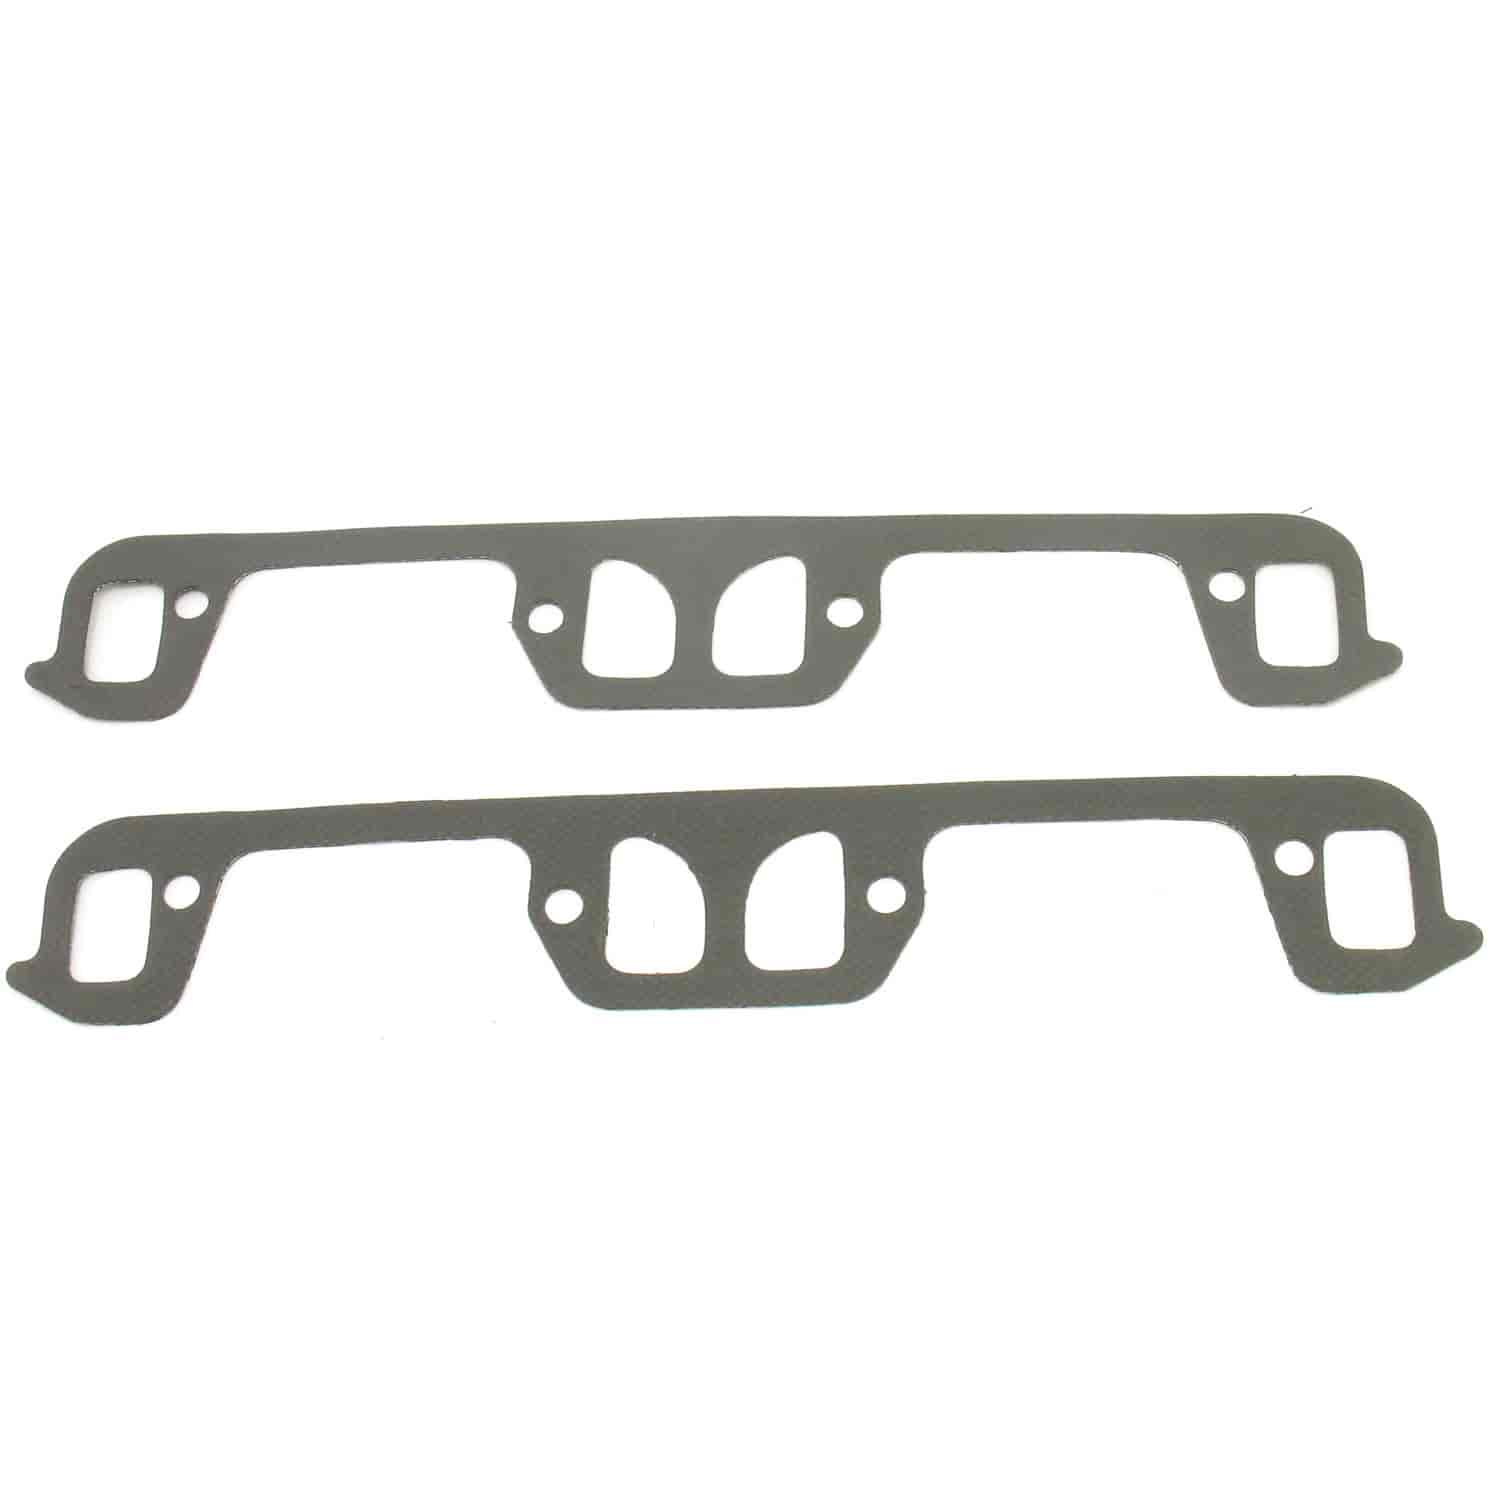 Patriot Exhaust H7593 - Patriot Exhaust Header Flange Gaskets